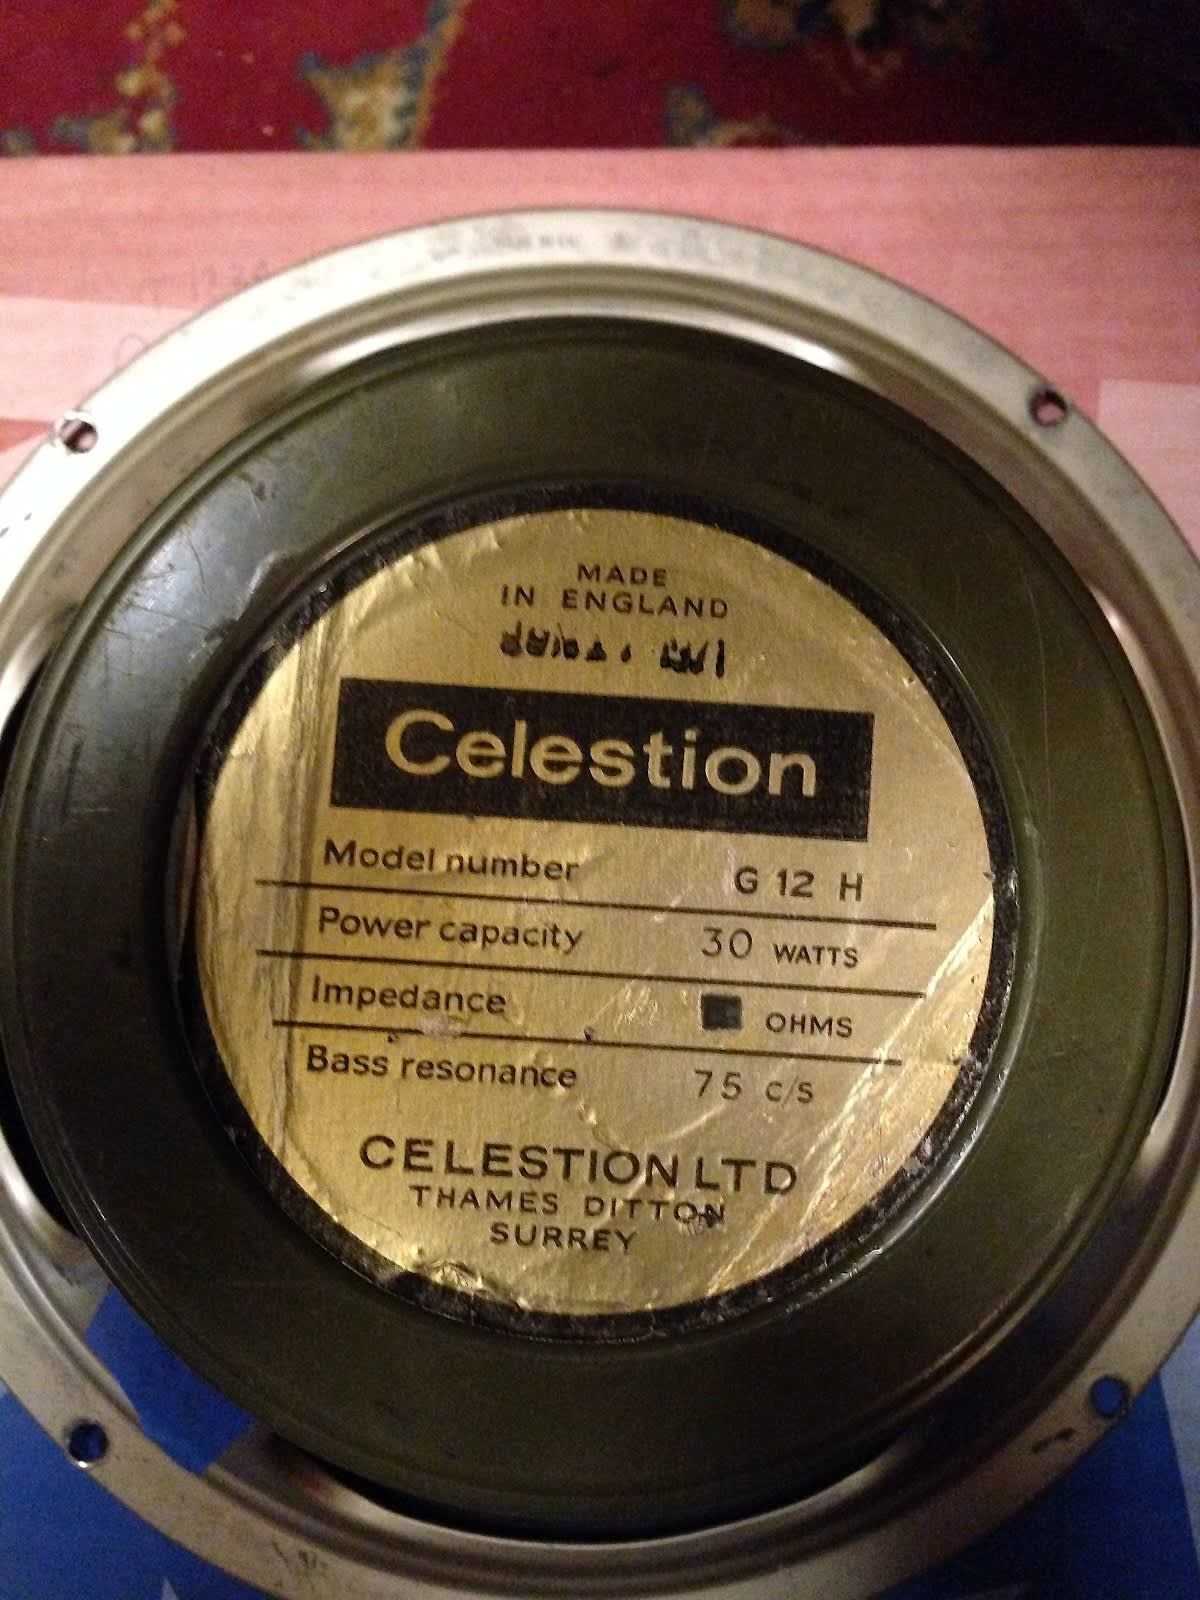 celestion speakers dating Yearly until 1979 the theory is verified by inspection tags, speaker date codes and capacitor date codes dating celestion speakers dating eminence.